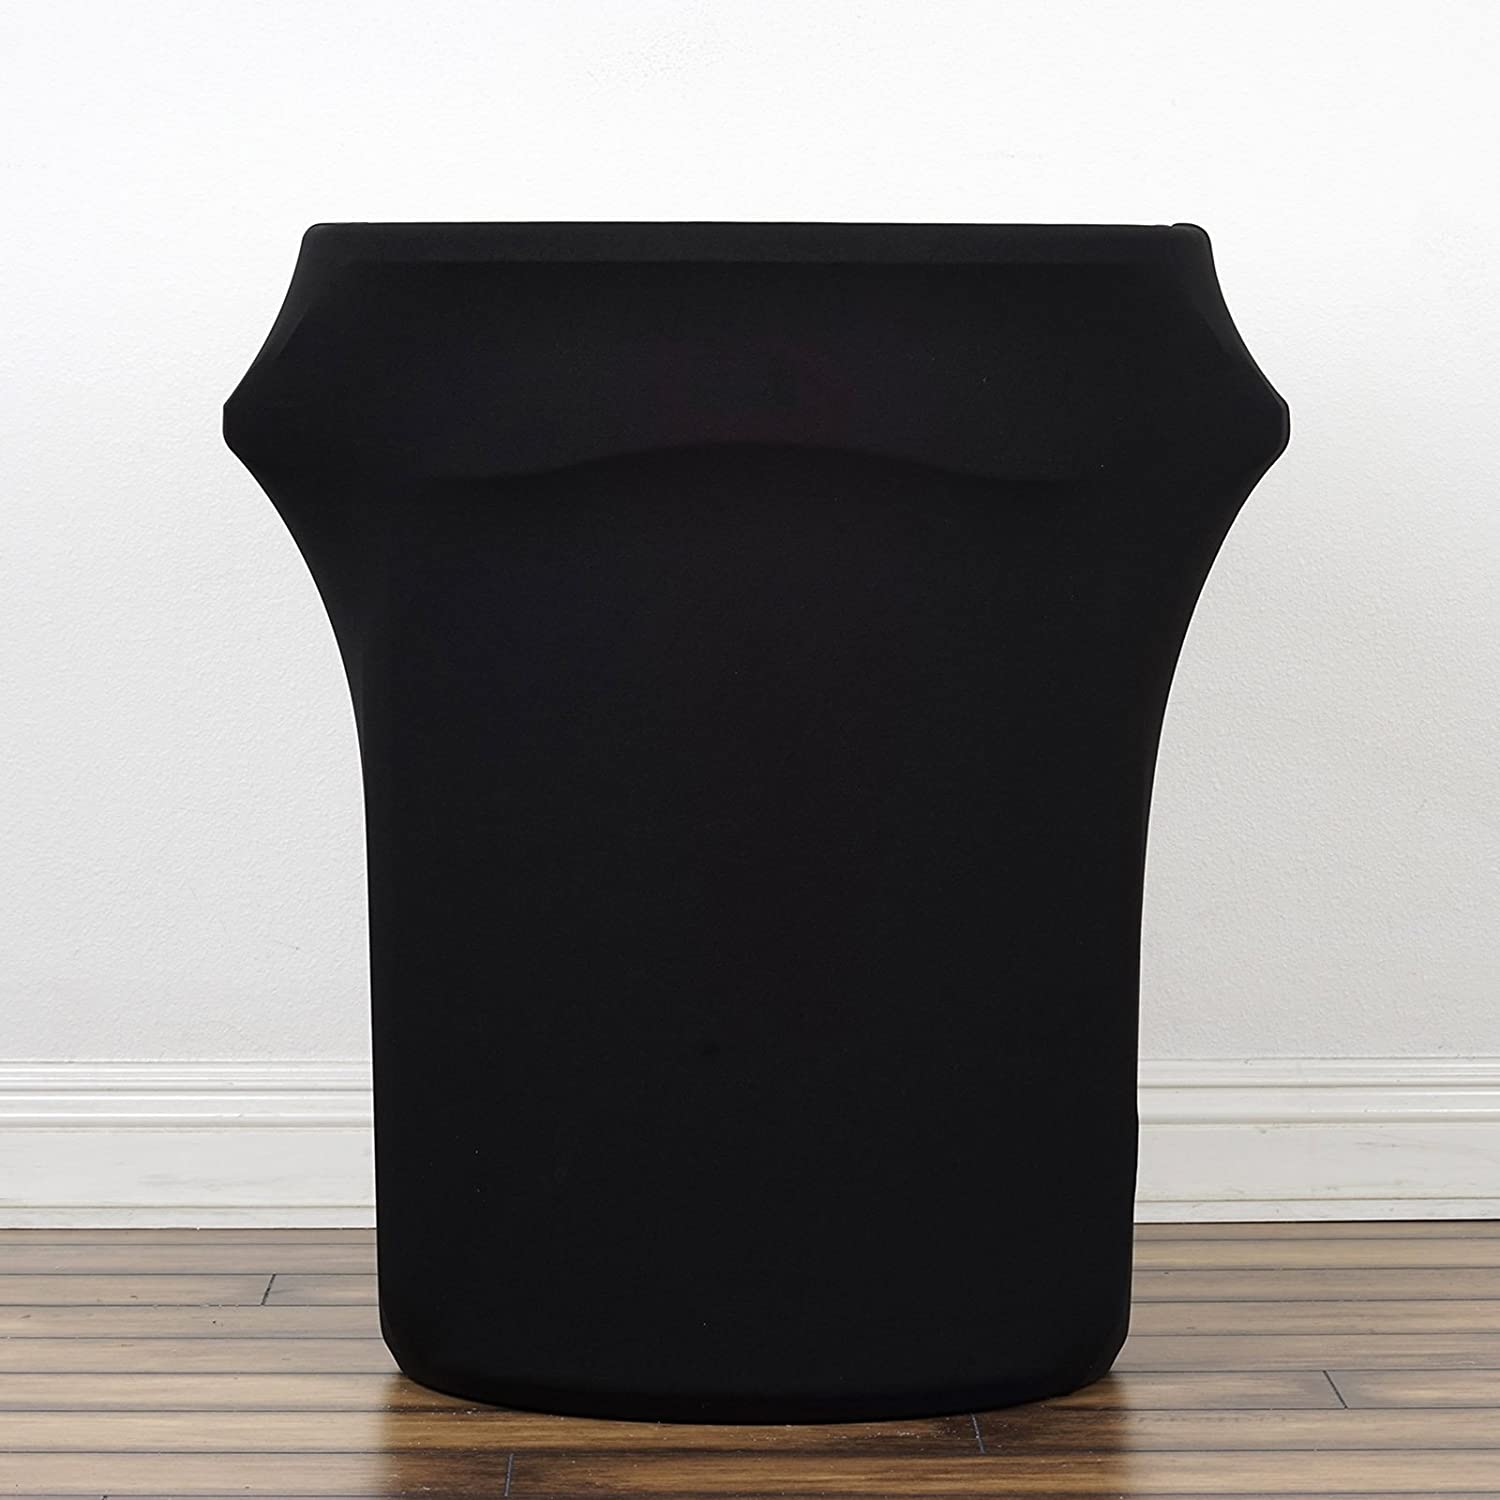 Super sale Efavormart New 41-50 Gallons Max 73% OFF Commercial Grade Stretch Span Black